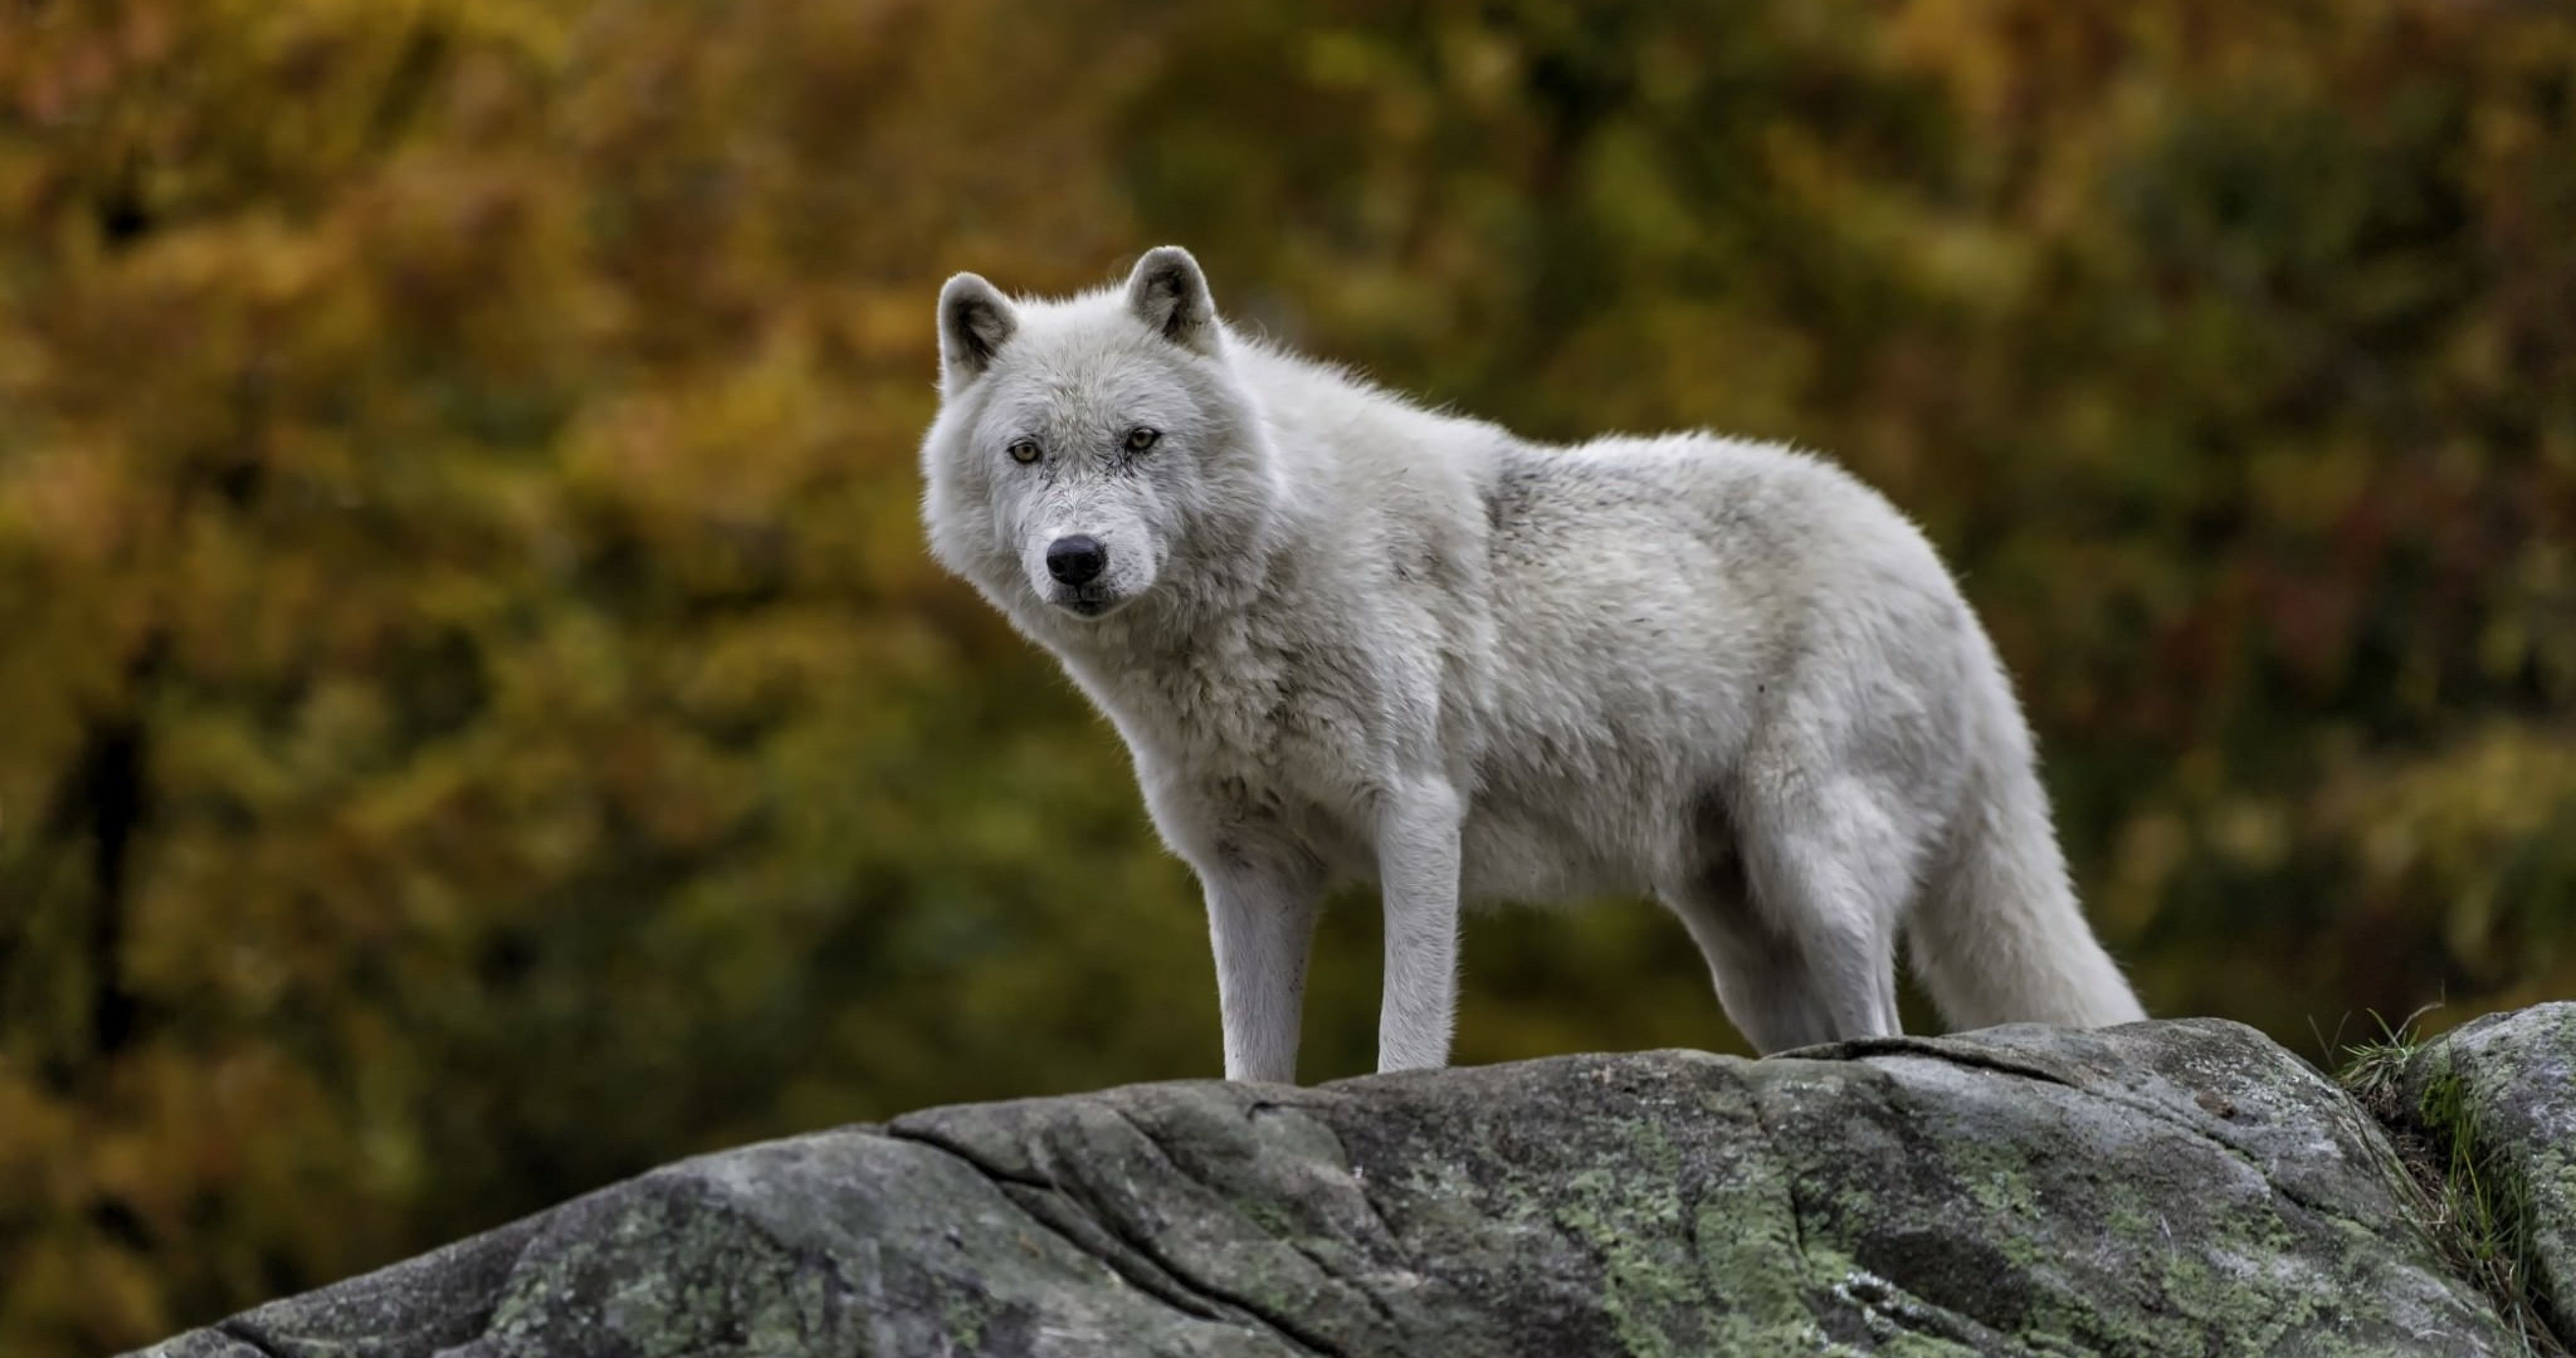 Fox and Wolf Wallpapers - Top Free Fox and Wolf ...